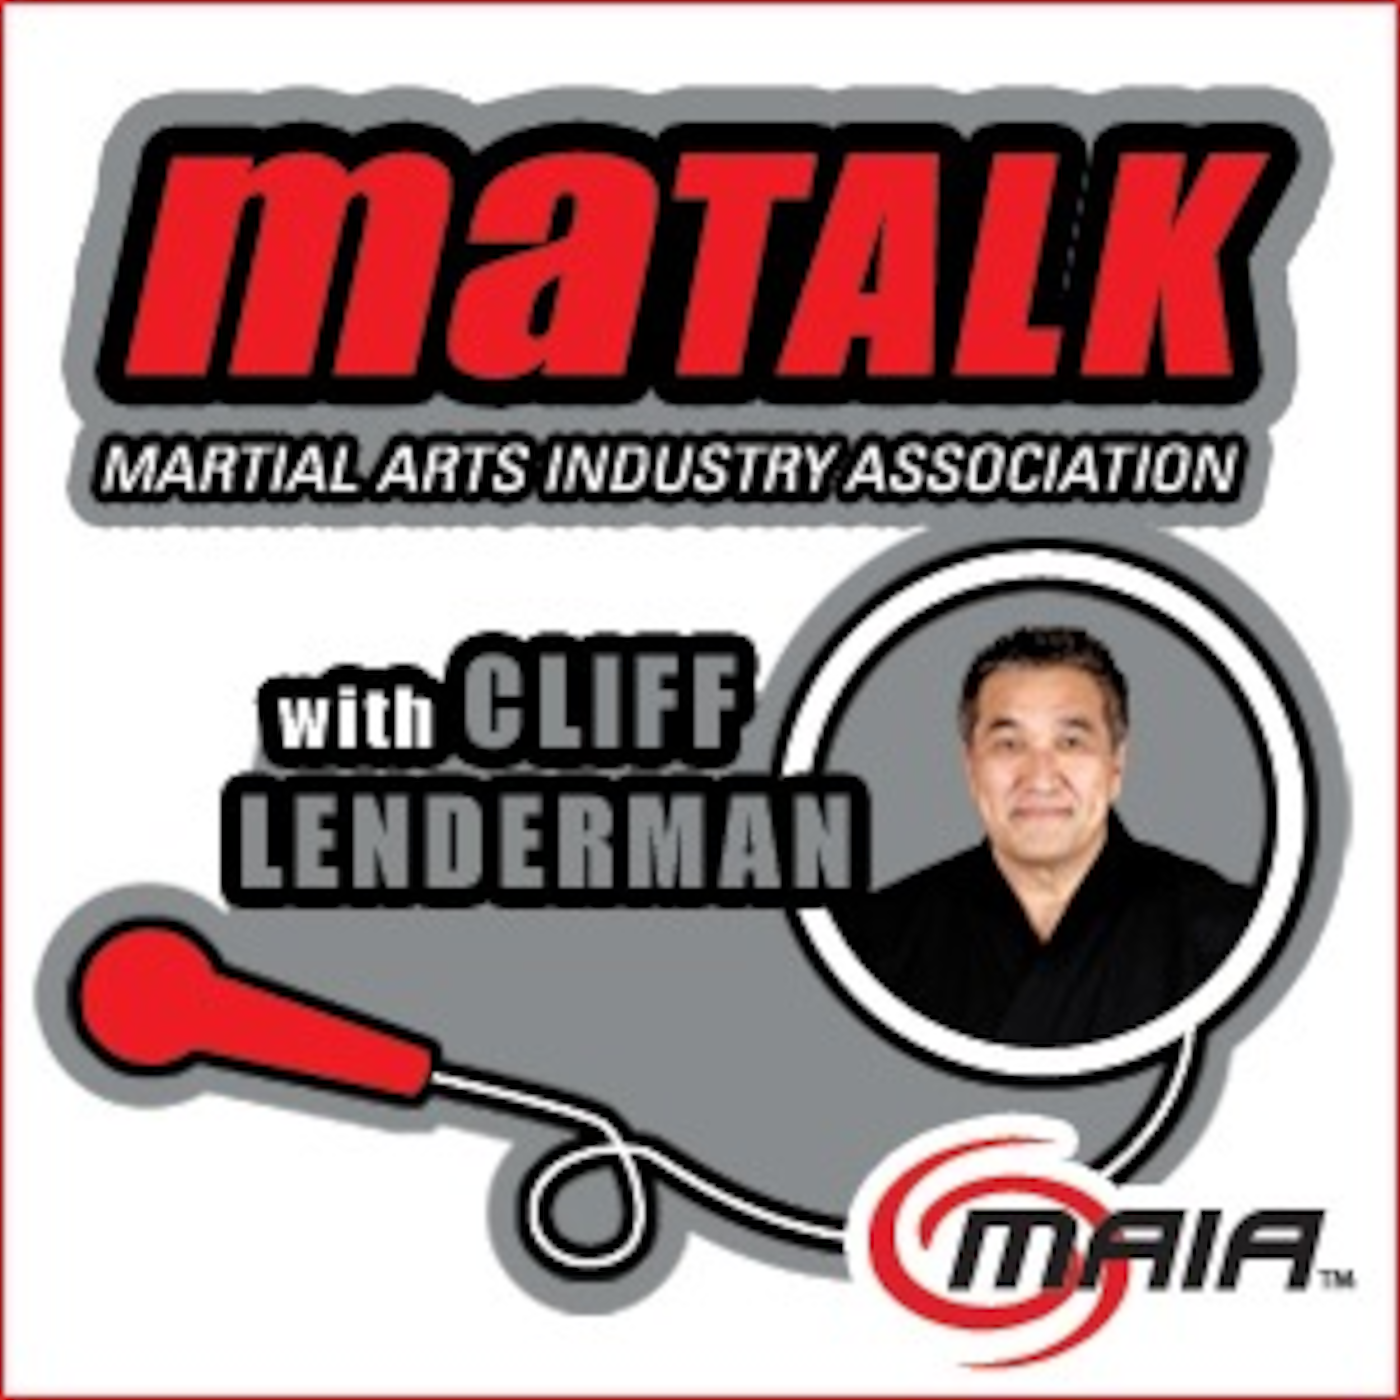 maTALK by The Martial Arts Industry Association